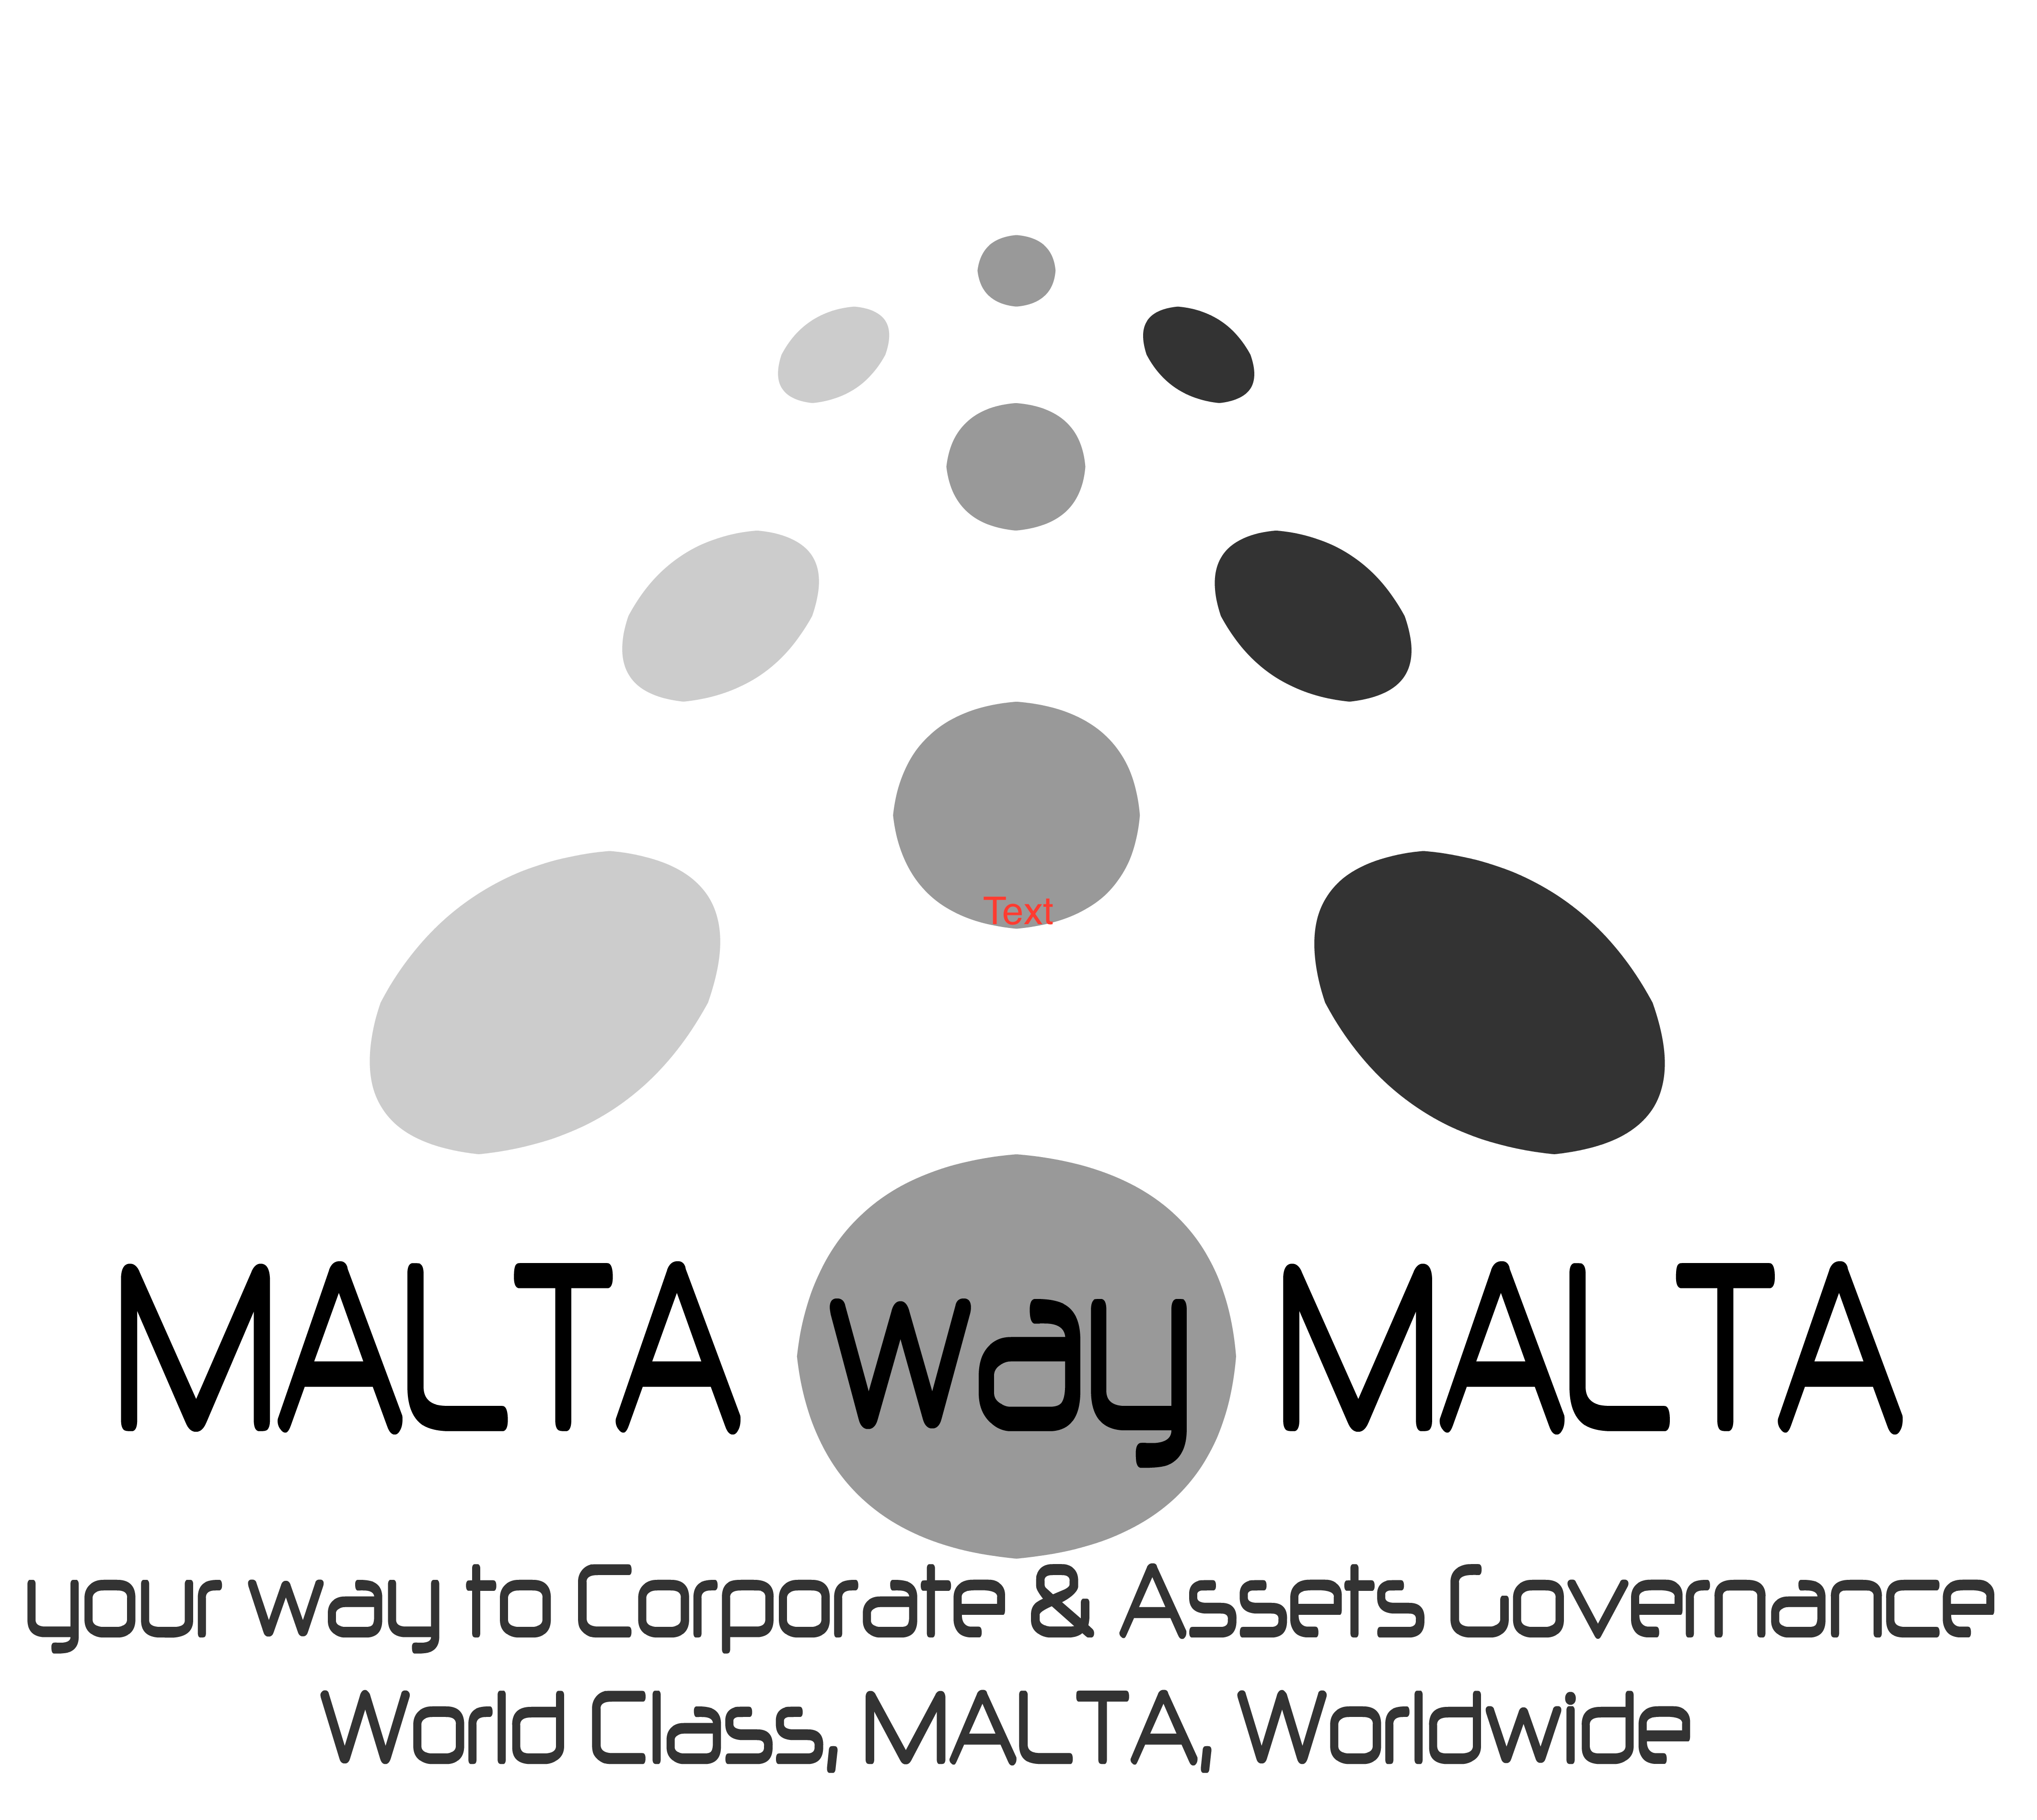 MALTAway_corporate_asset_governance